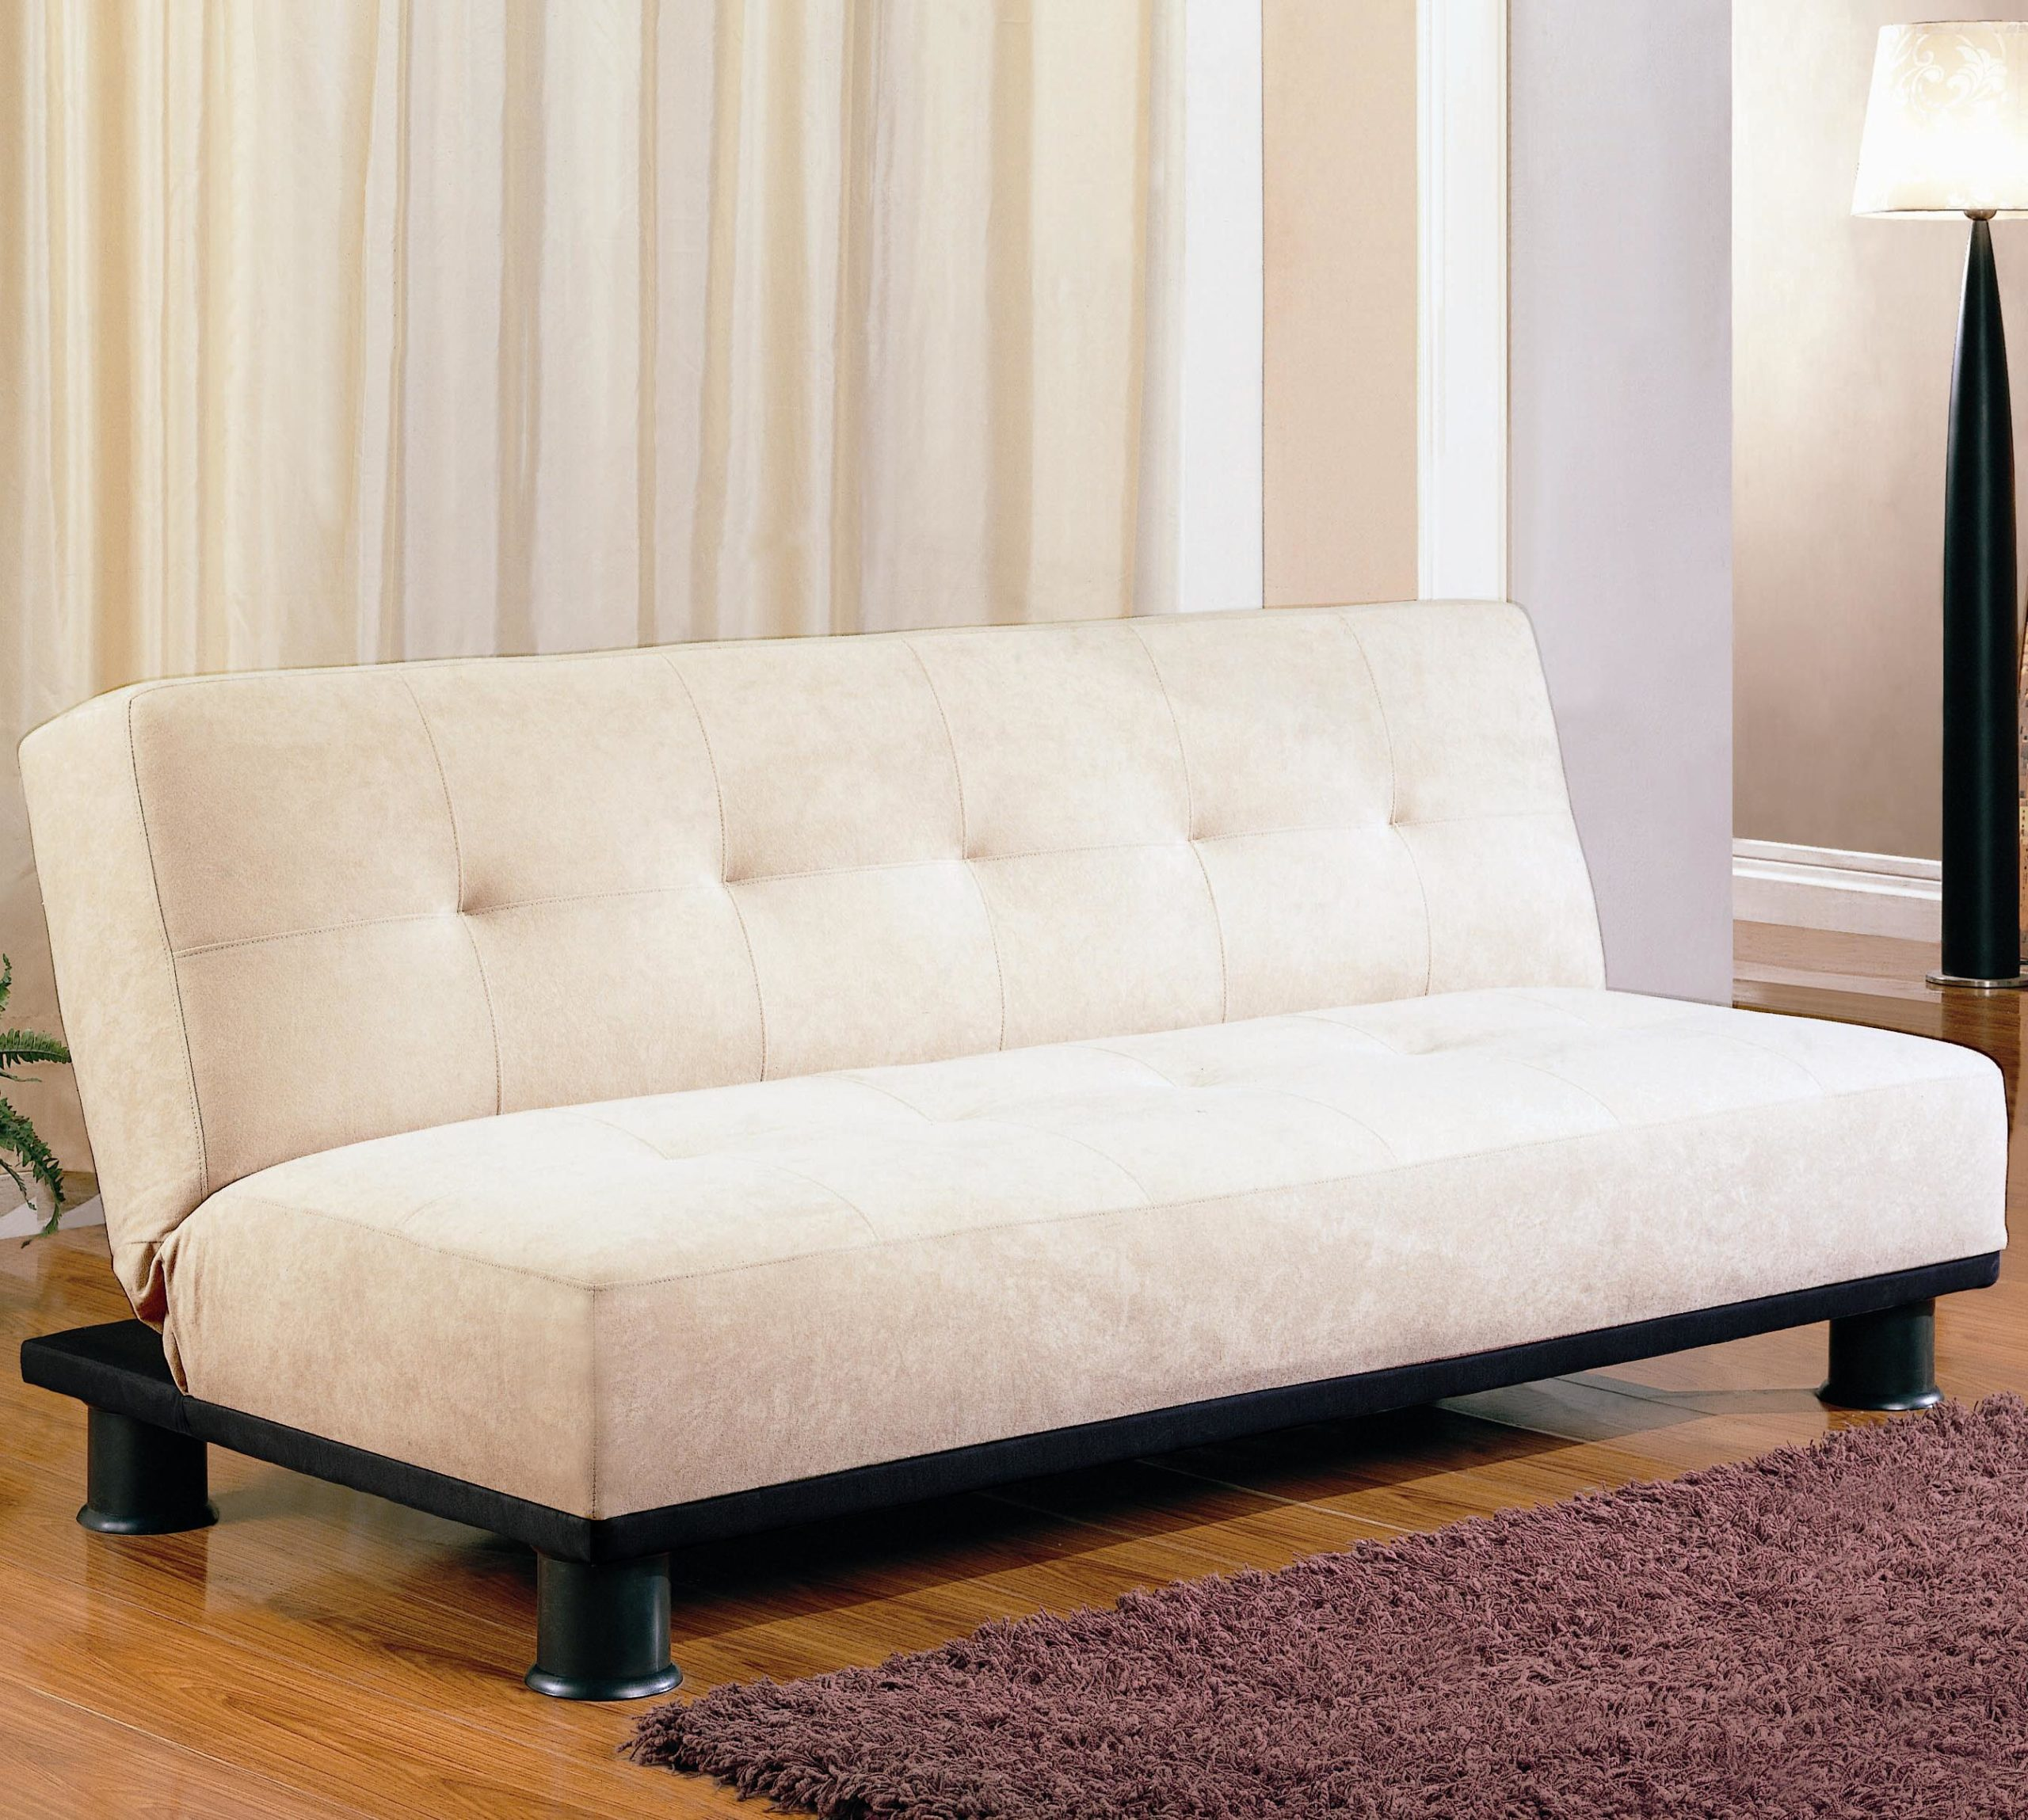 White Contemporary Armless Convertible Sofa Bed Up Position